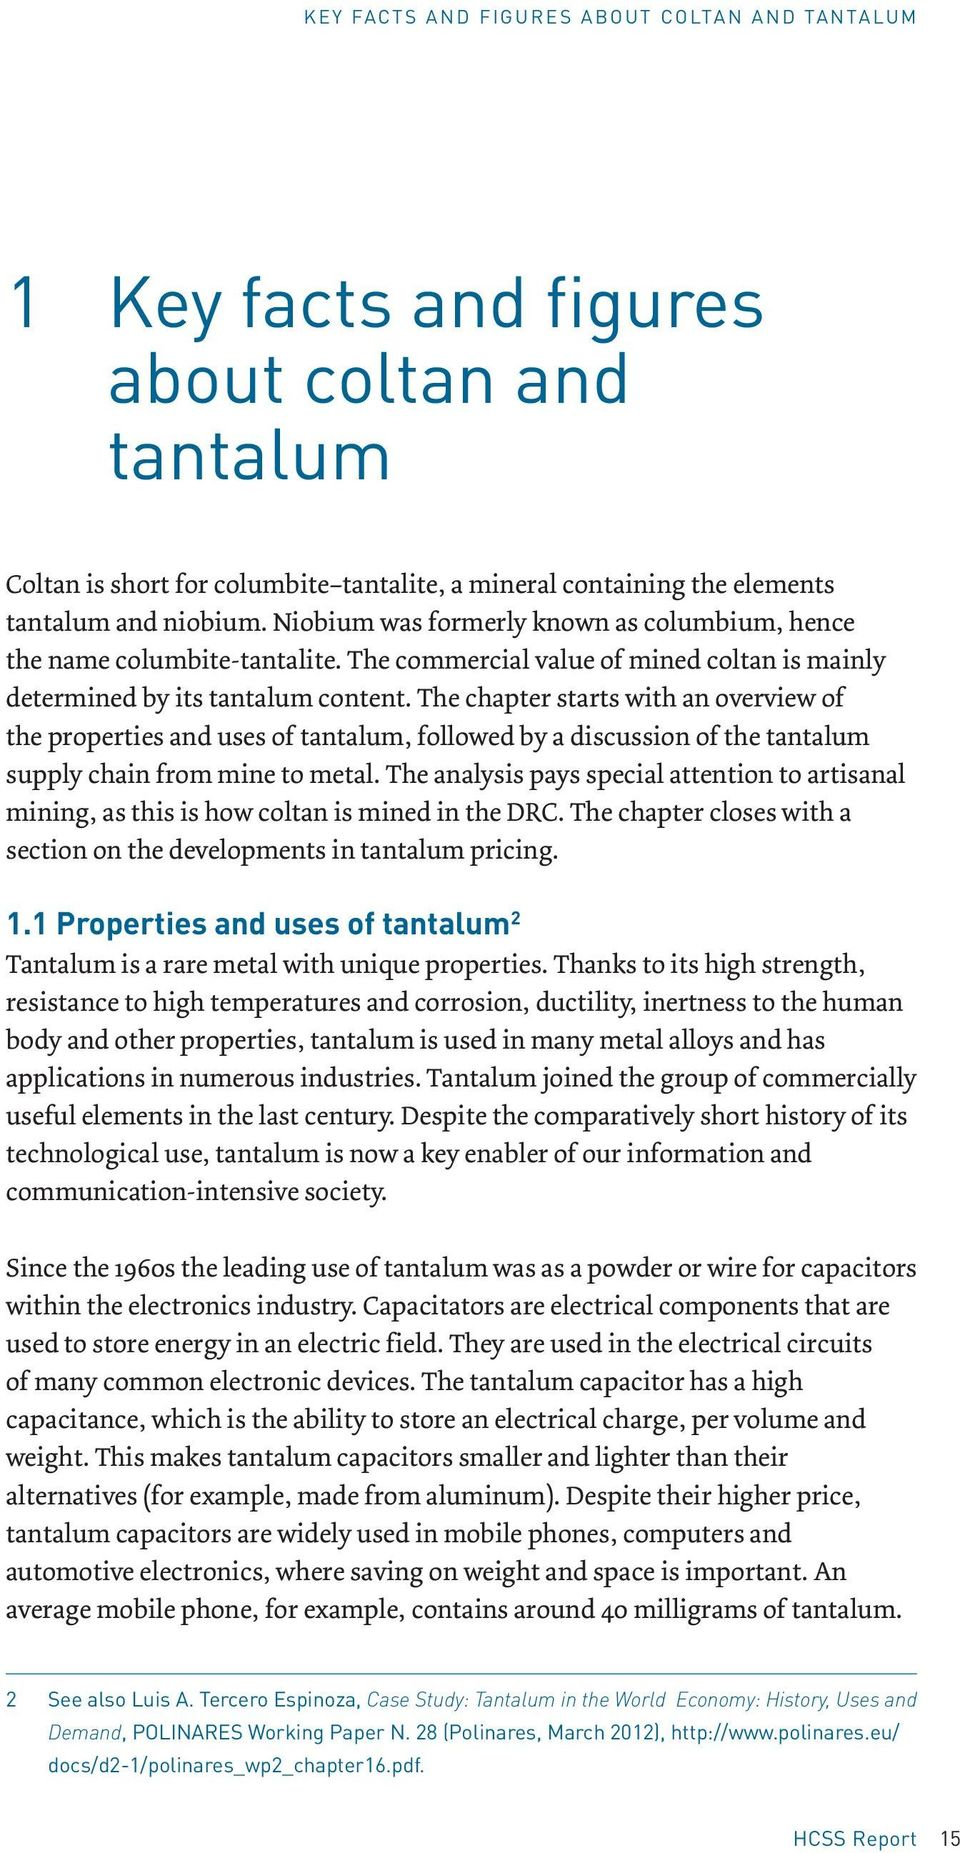 The chapter starts with an overview of the properties and uses of tantalum, followed by a discussion of the tantalum supply chain from mine to metal.